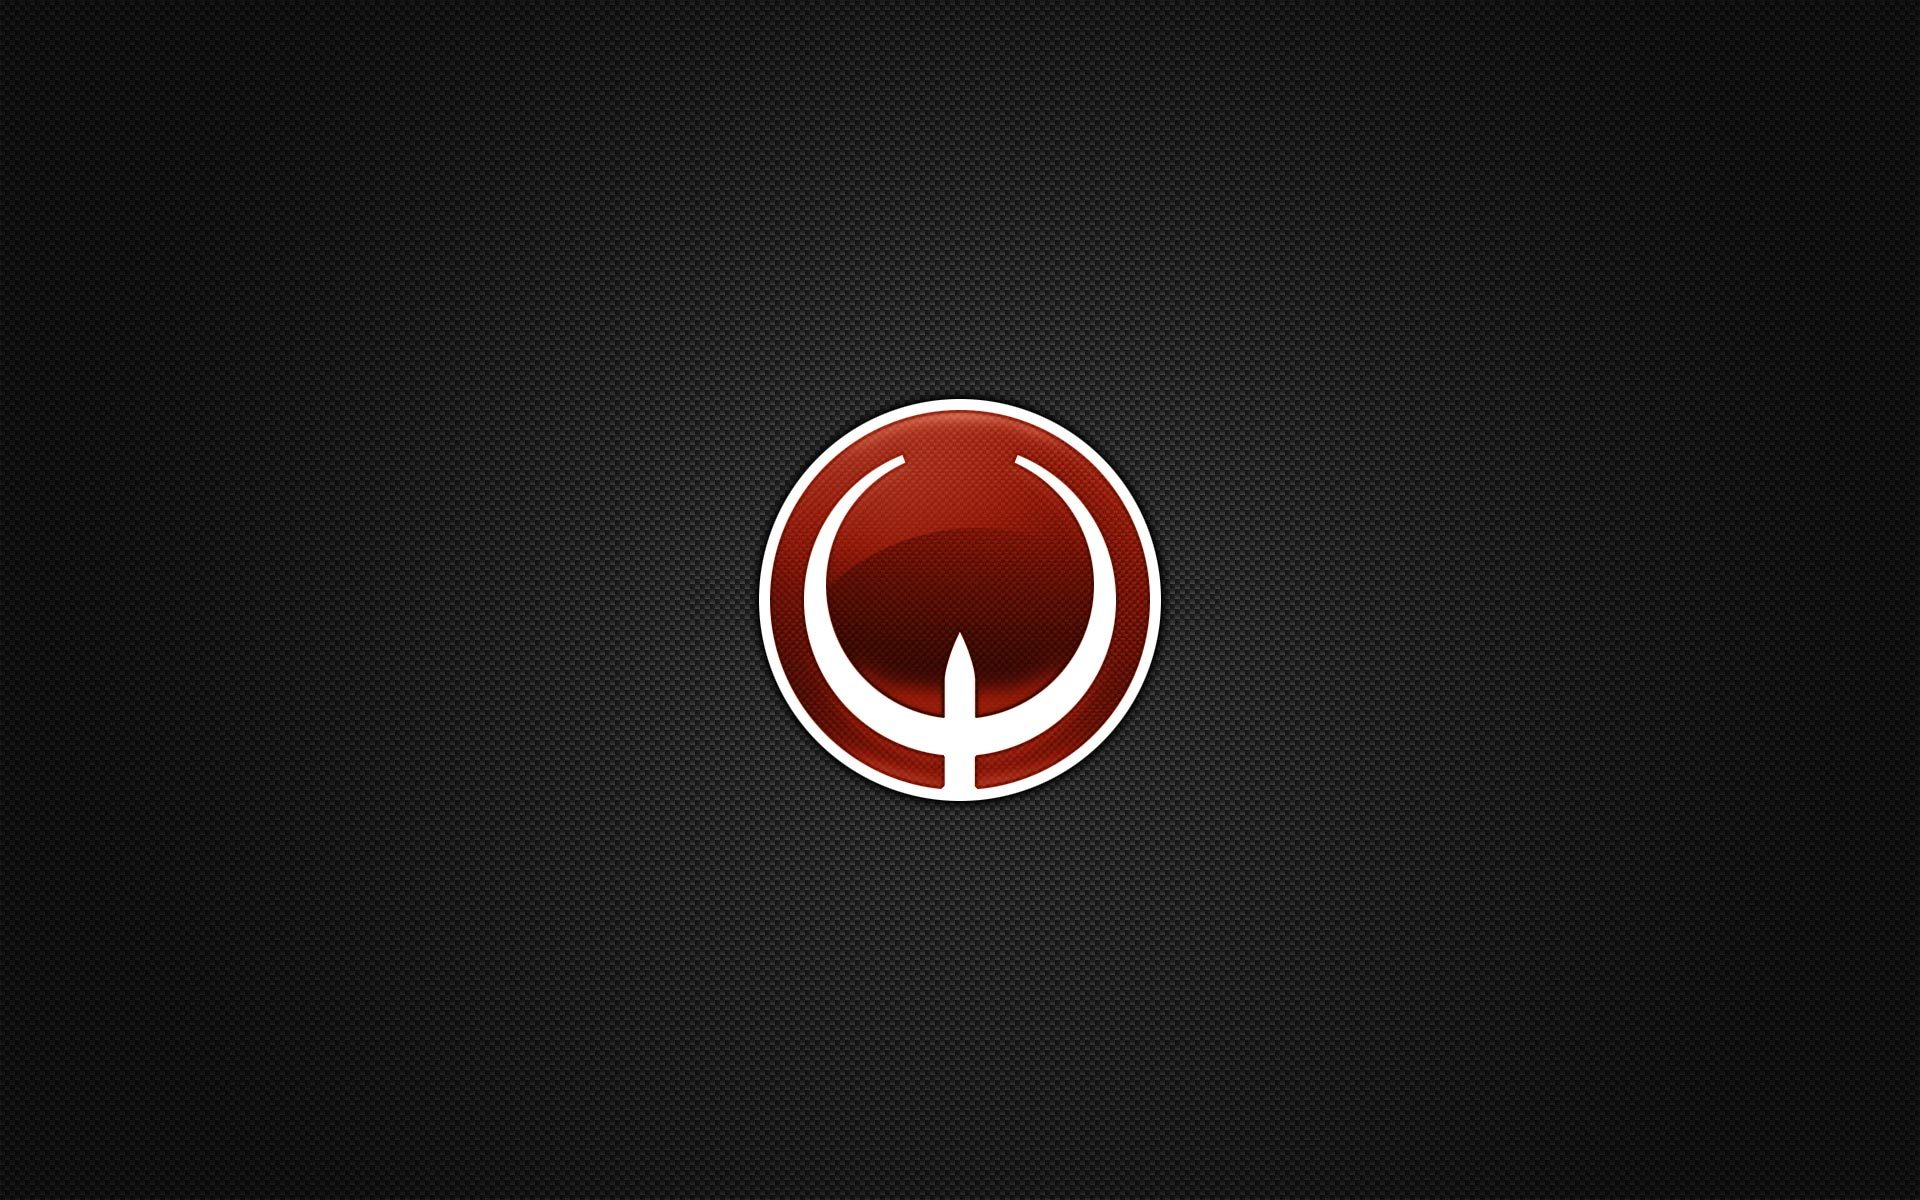 minimalistic quake logos HD Wallpaper